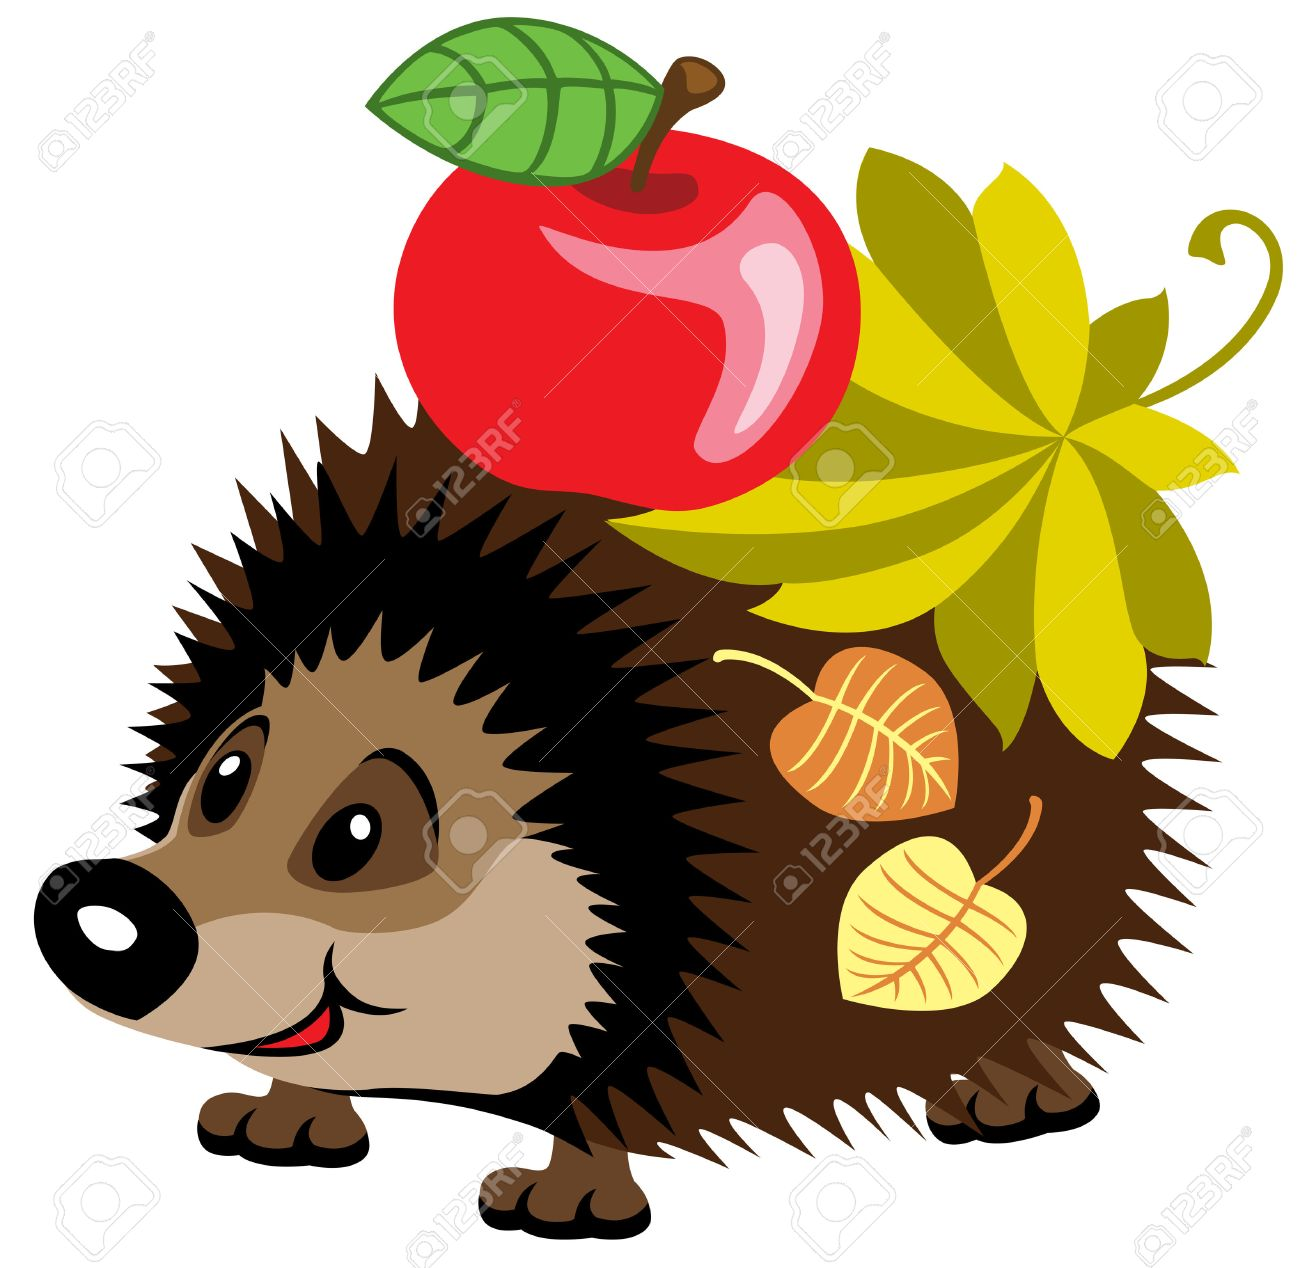 Cute Hedgehog Clipart